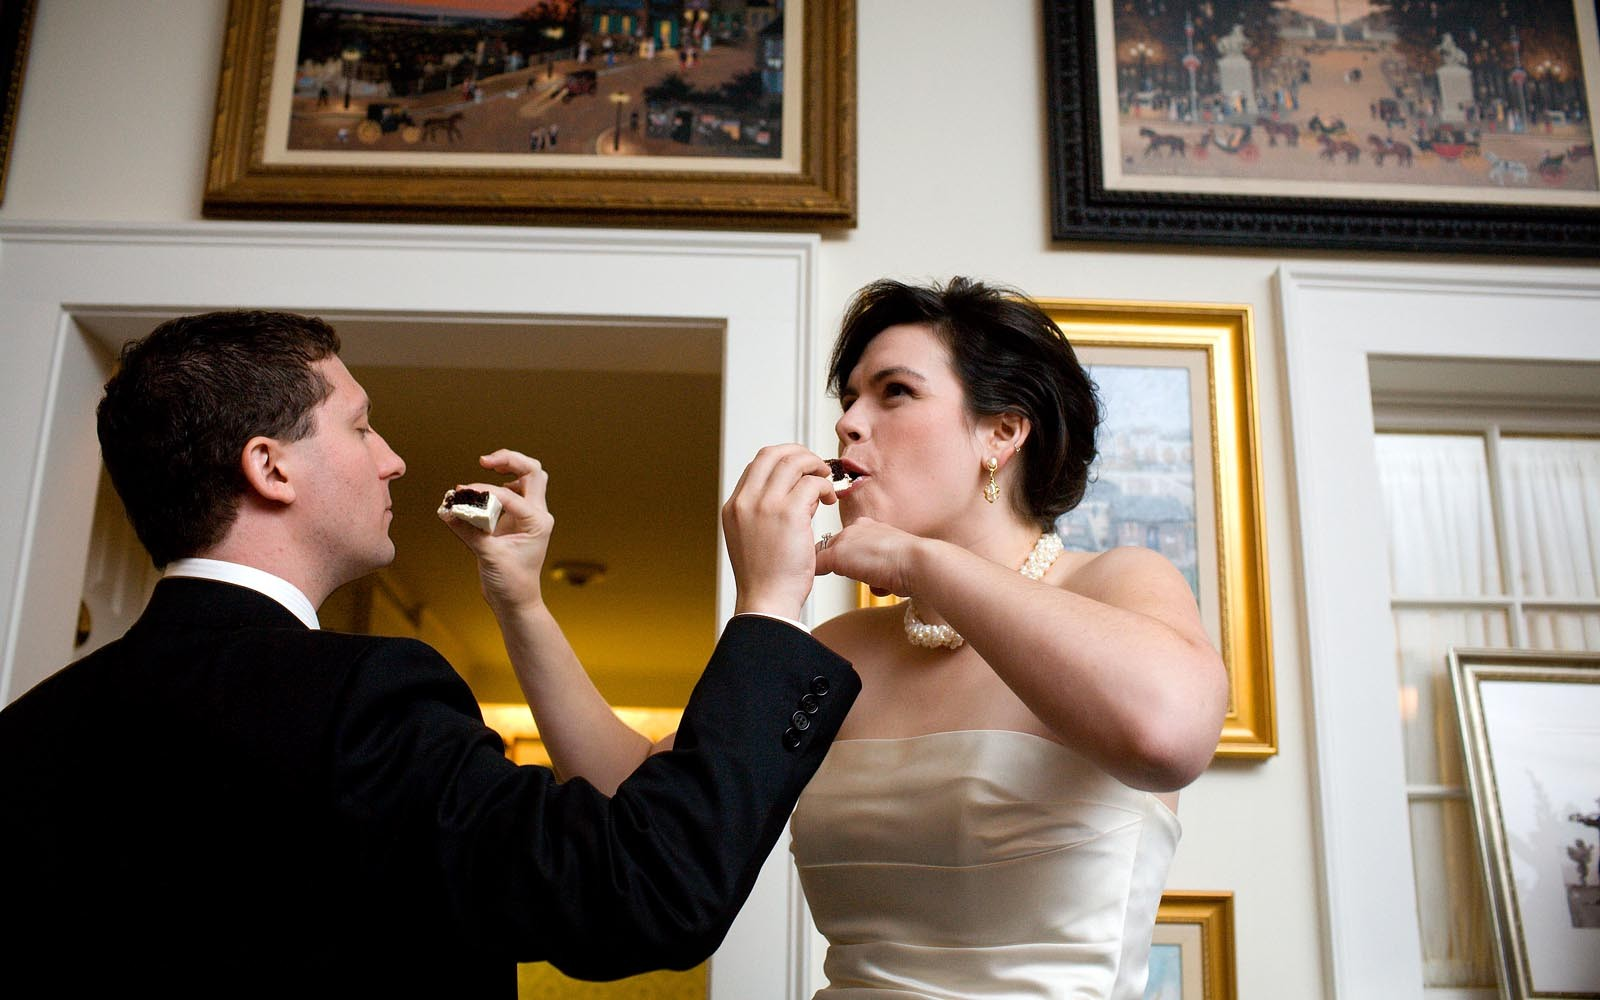 Photographing couples' celebrations across New England.